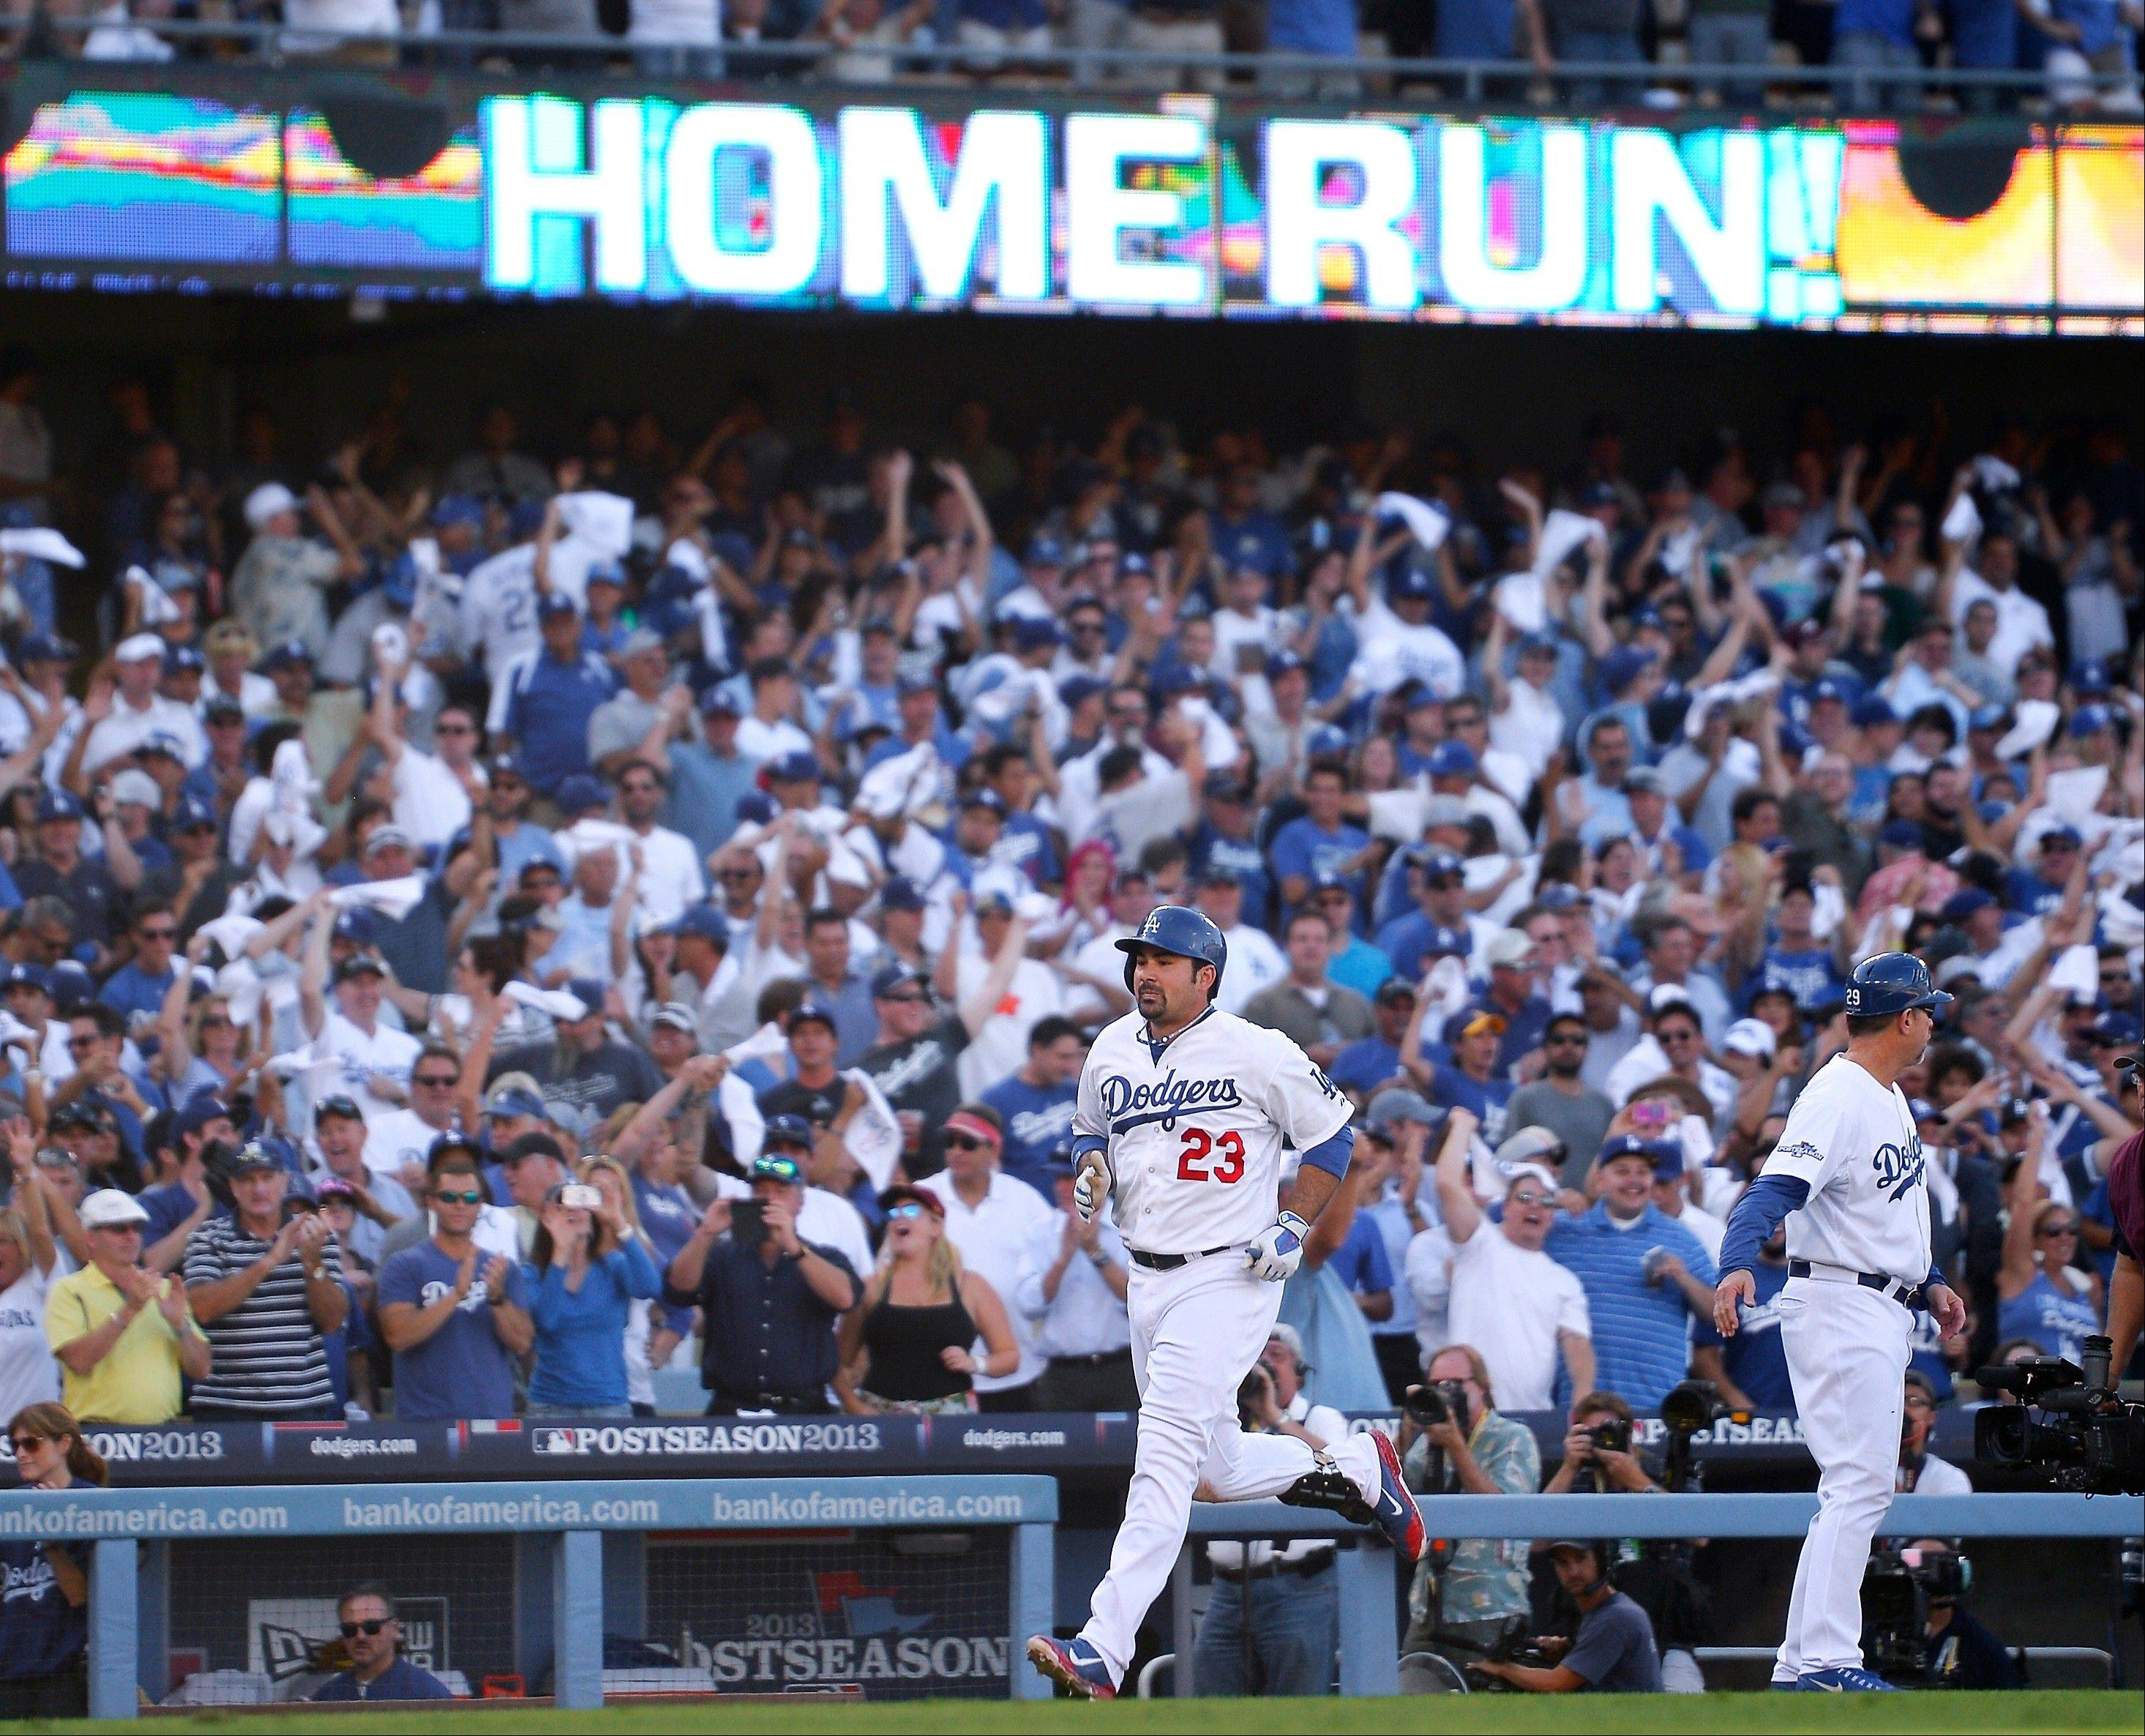 Cardinals can't close out Dodgers in NLCS